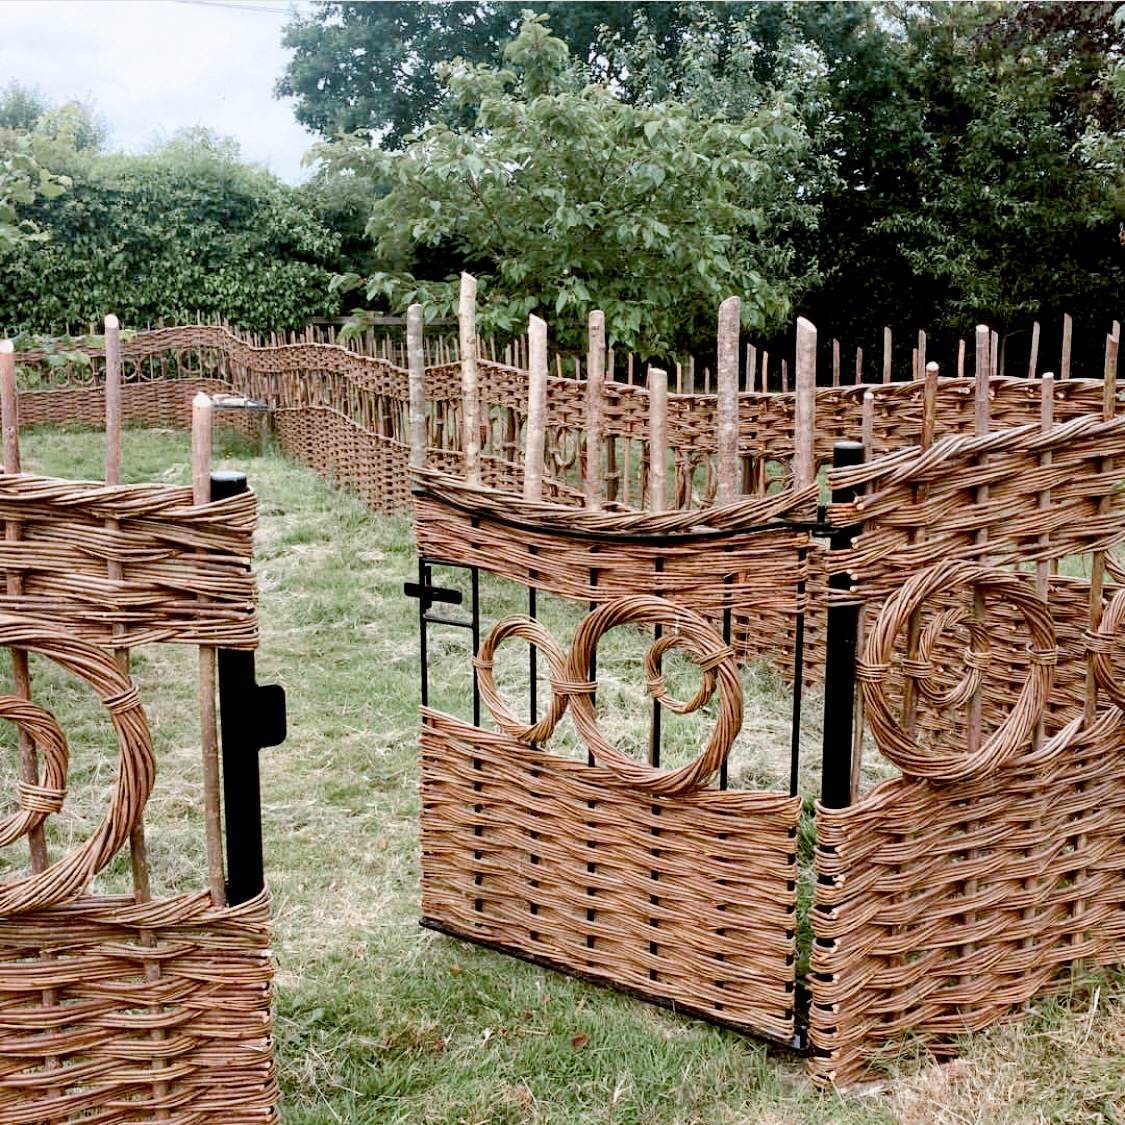 In the Garden | Art: Bespoke Willow by Jay Davey